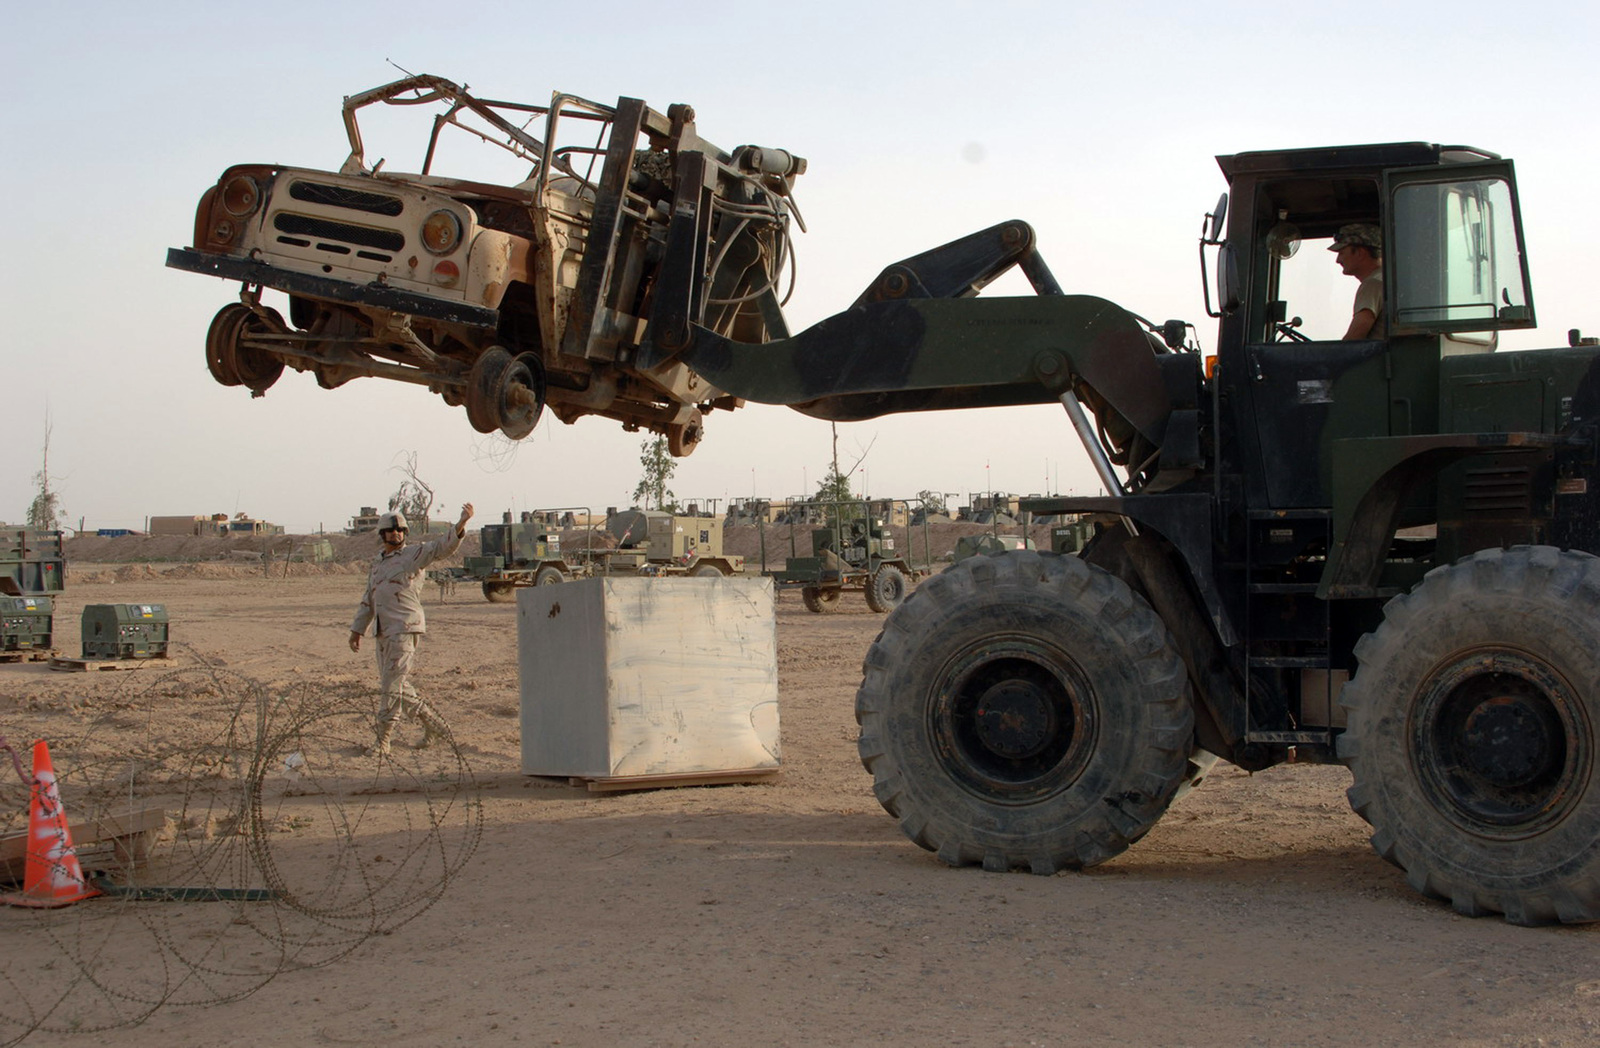 STAFF SGT. Michael Apgar, from the 324th Psychological Operations Co, (POC), Colo. USAR, operates the controls from a Rough Terrain Container Handler (RTCH) forklift vehicle, to remove a rusty, junked vehicle, from the area.  SGT. Felipe Capristo, from the 445th Civil Affairs Battalion, Calif. USAR, gives direction while ground guiding him as he lifts the vehicle. (U.S. Army photo by PFC. William Servinski II) (Released)